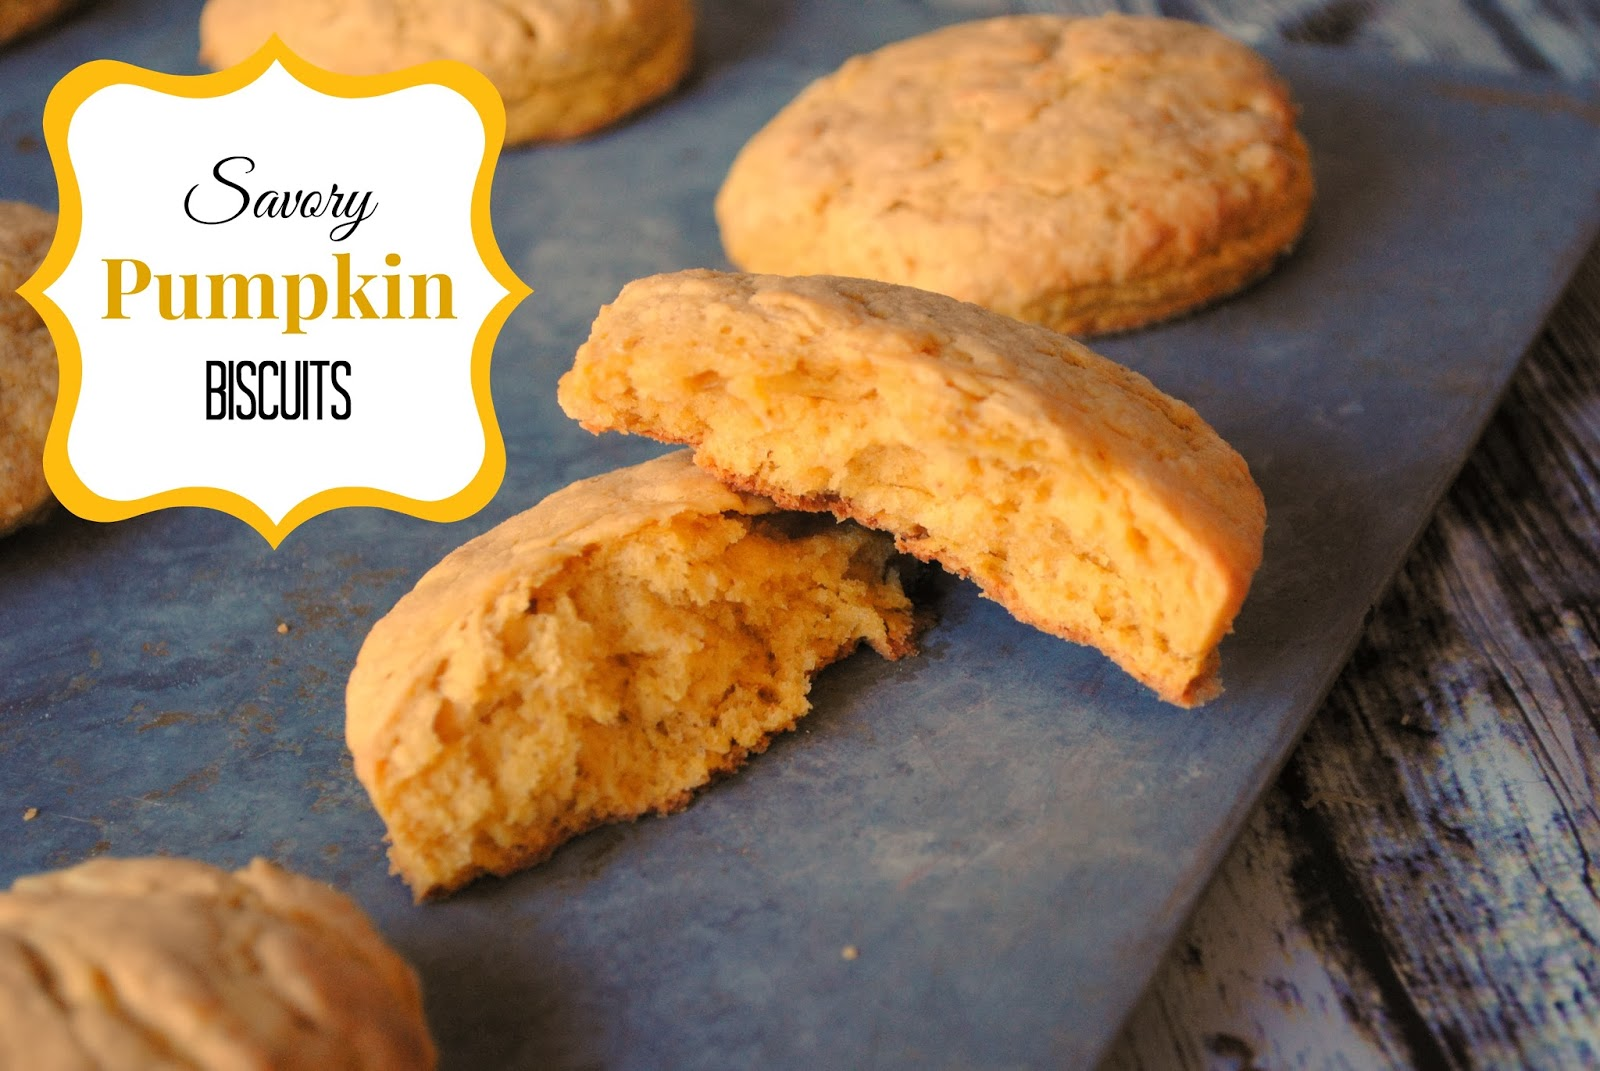 Savory Pumpkin Biscuits